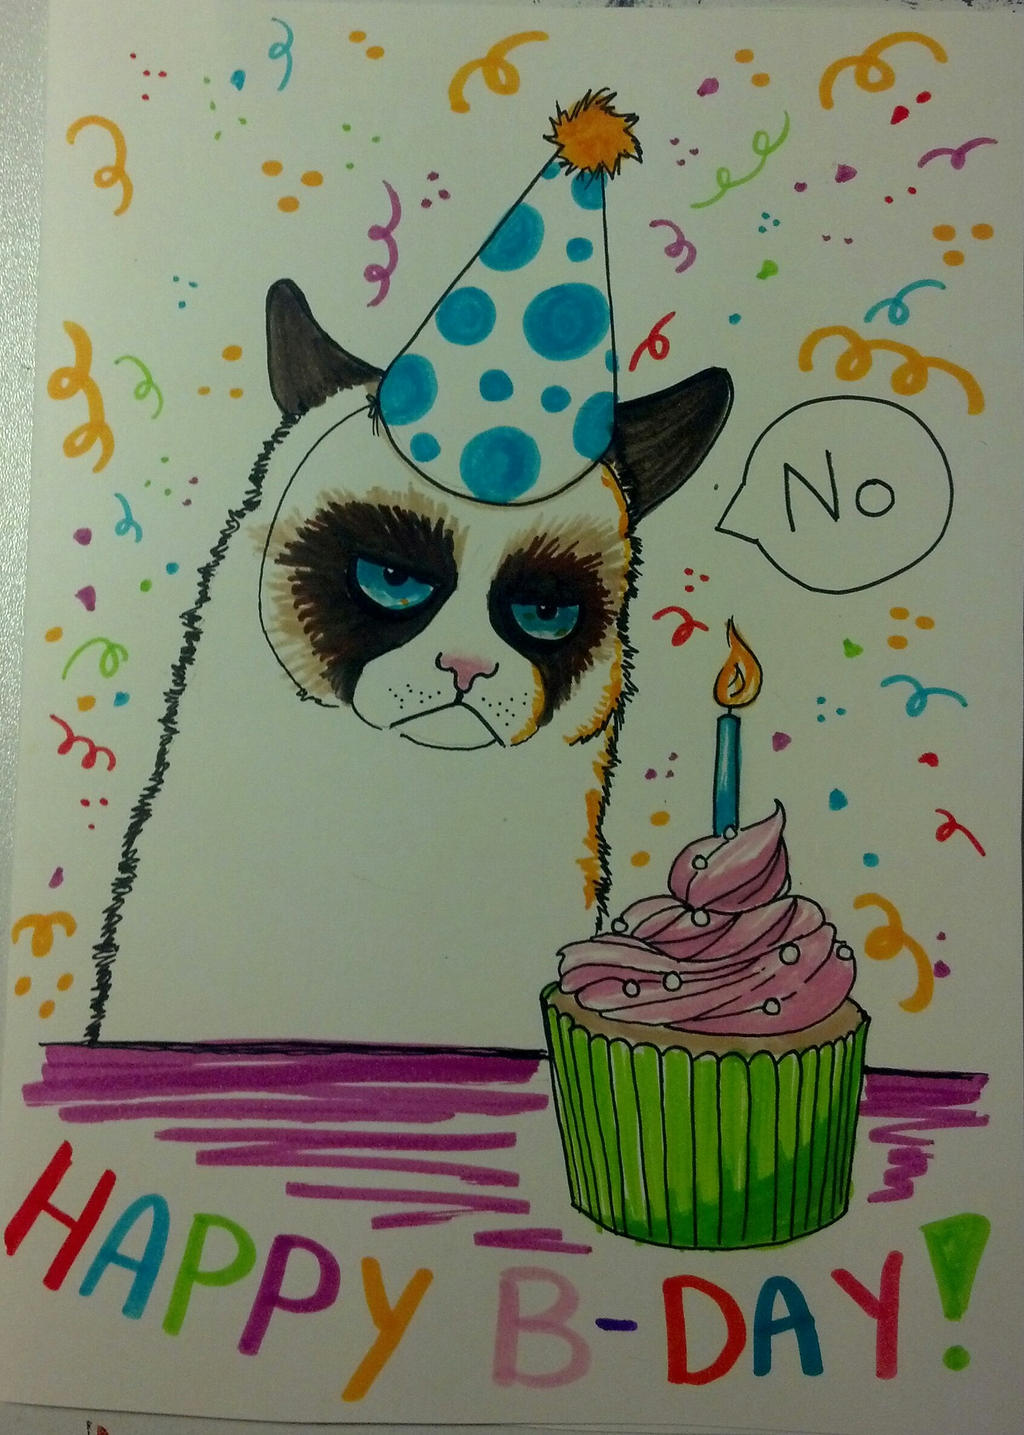 Happy birthday mom grumpy cat says no by kitsune kari on deviantart happy birthday mom grumpy cat says no by kitsune kari bookmarktalkfo Image collections